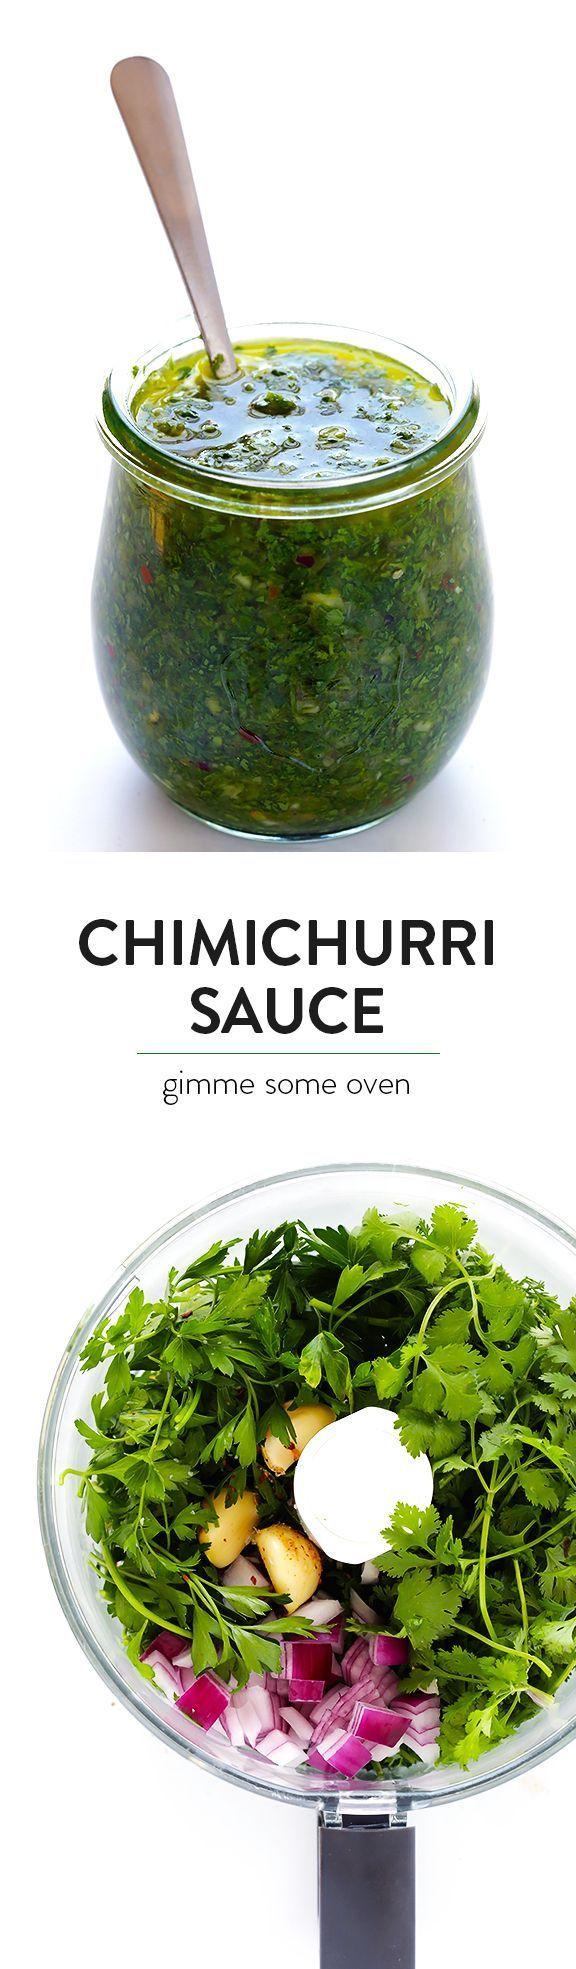 This homemade Chimichurri Sauce recipe is super easy to make in the food processor or blender, and it's full of easy, fresh, and delicious ingredients, and it's perfect for topping seafood, steak, veggies, or whatever sounds good. |